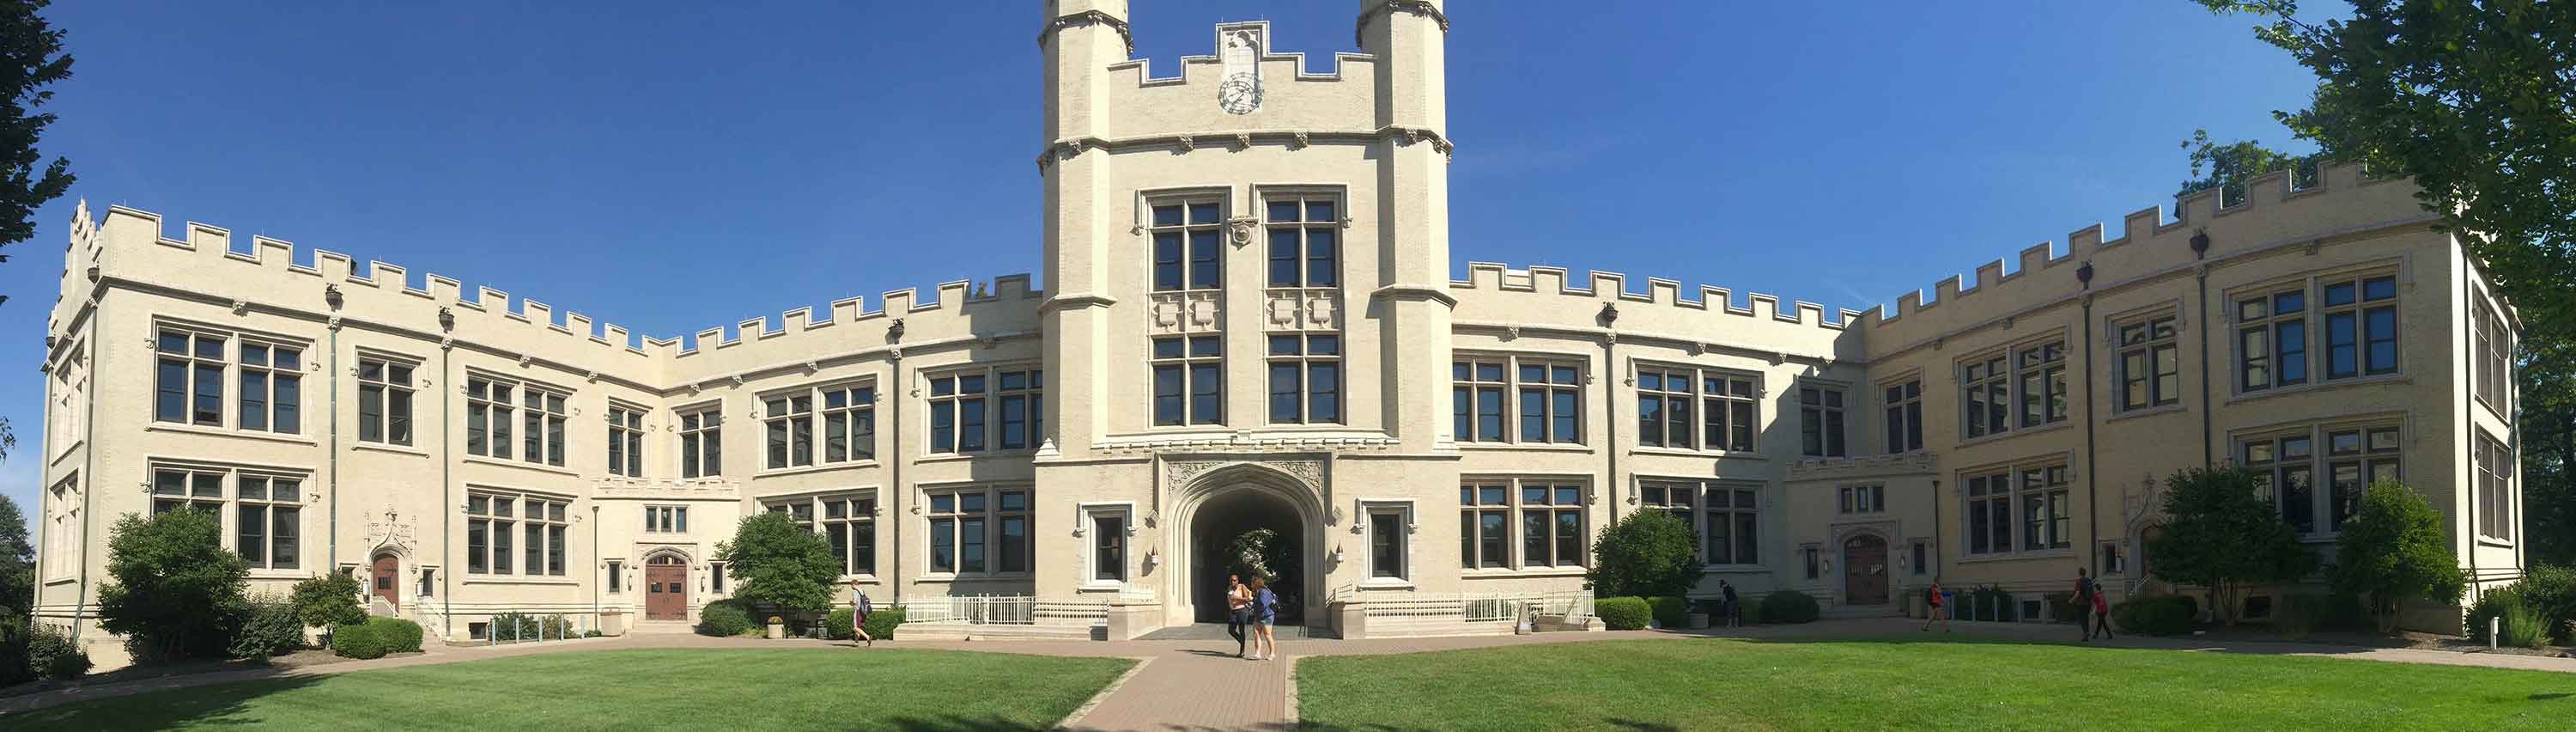 College of Wooster - Wooster, OH